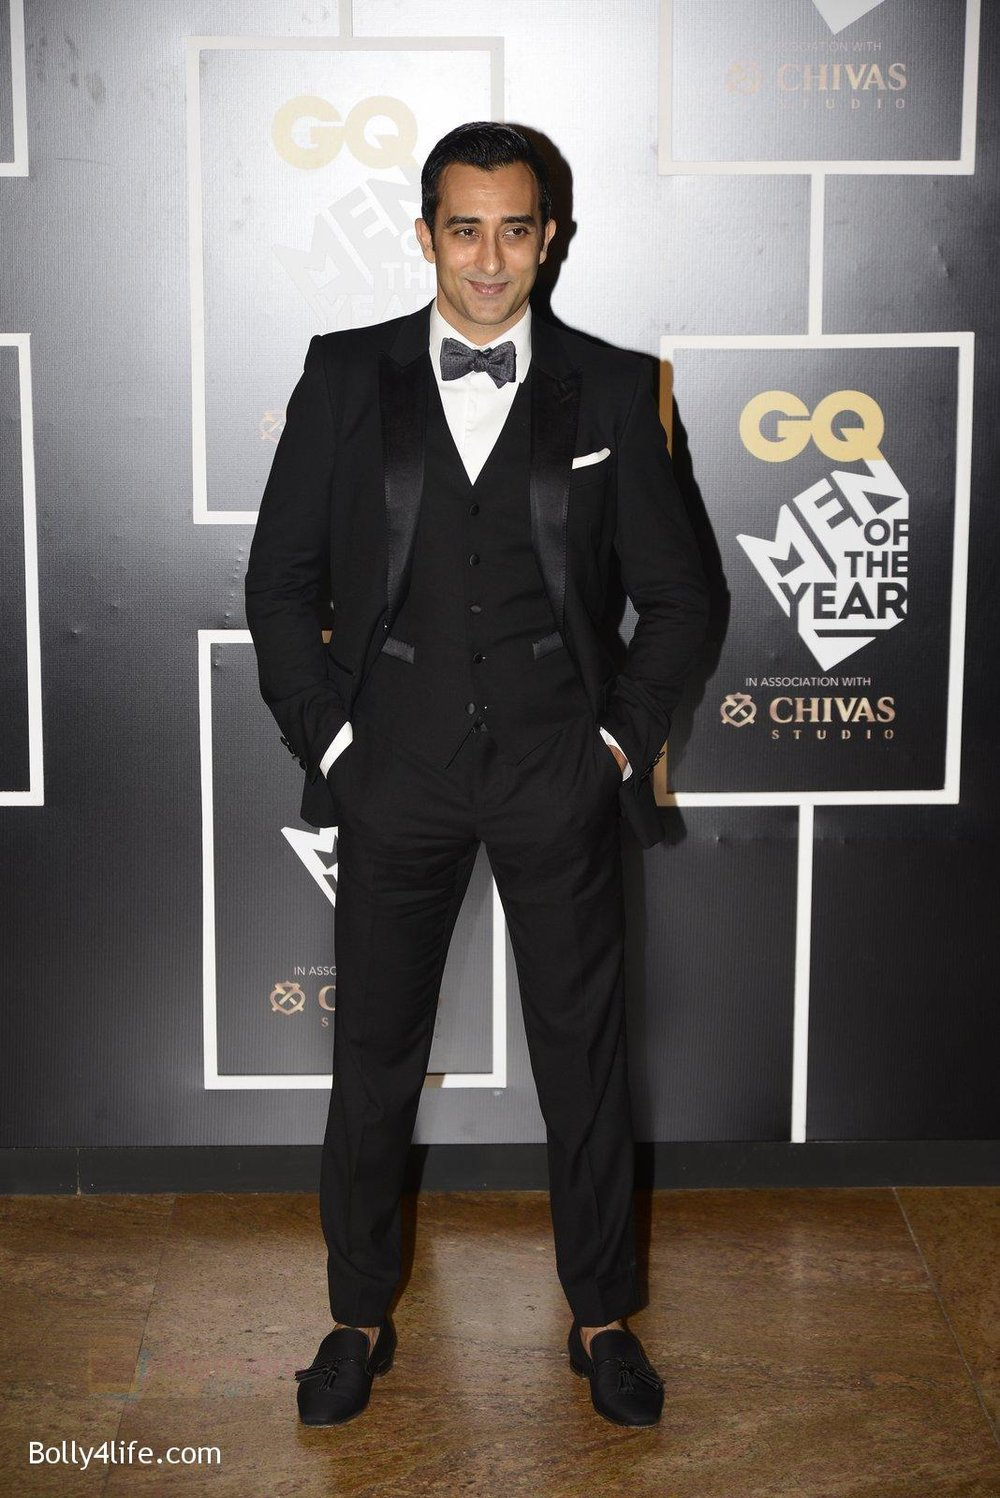 Rahul-Khanna-at-GQ-MEN-OF-THE-YEAR-on-27th-Sept-2016-952.jpg